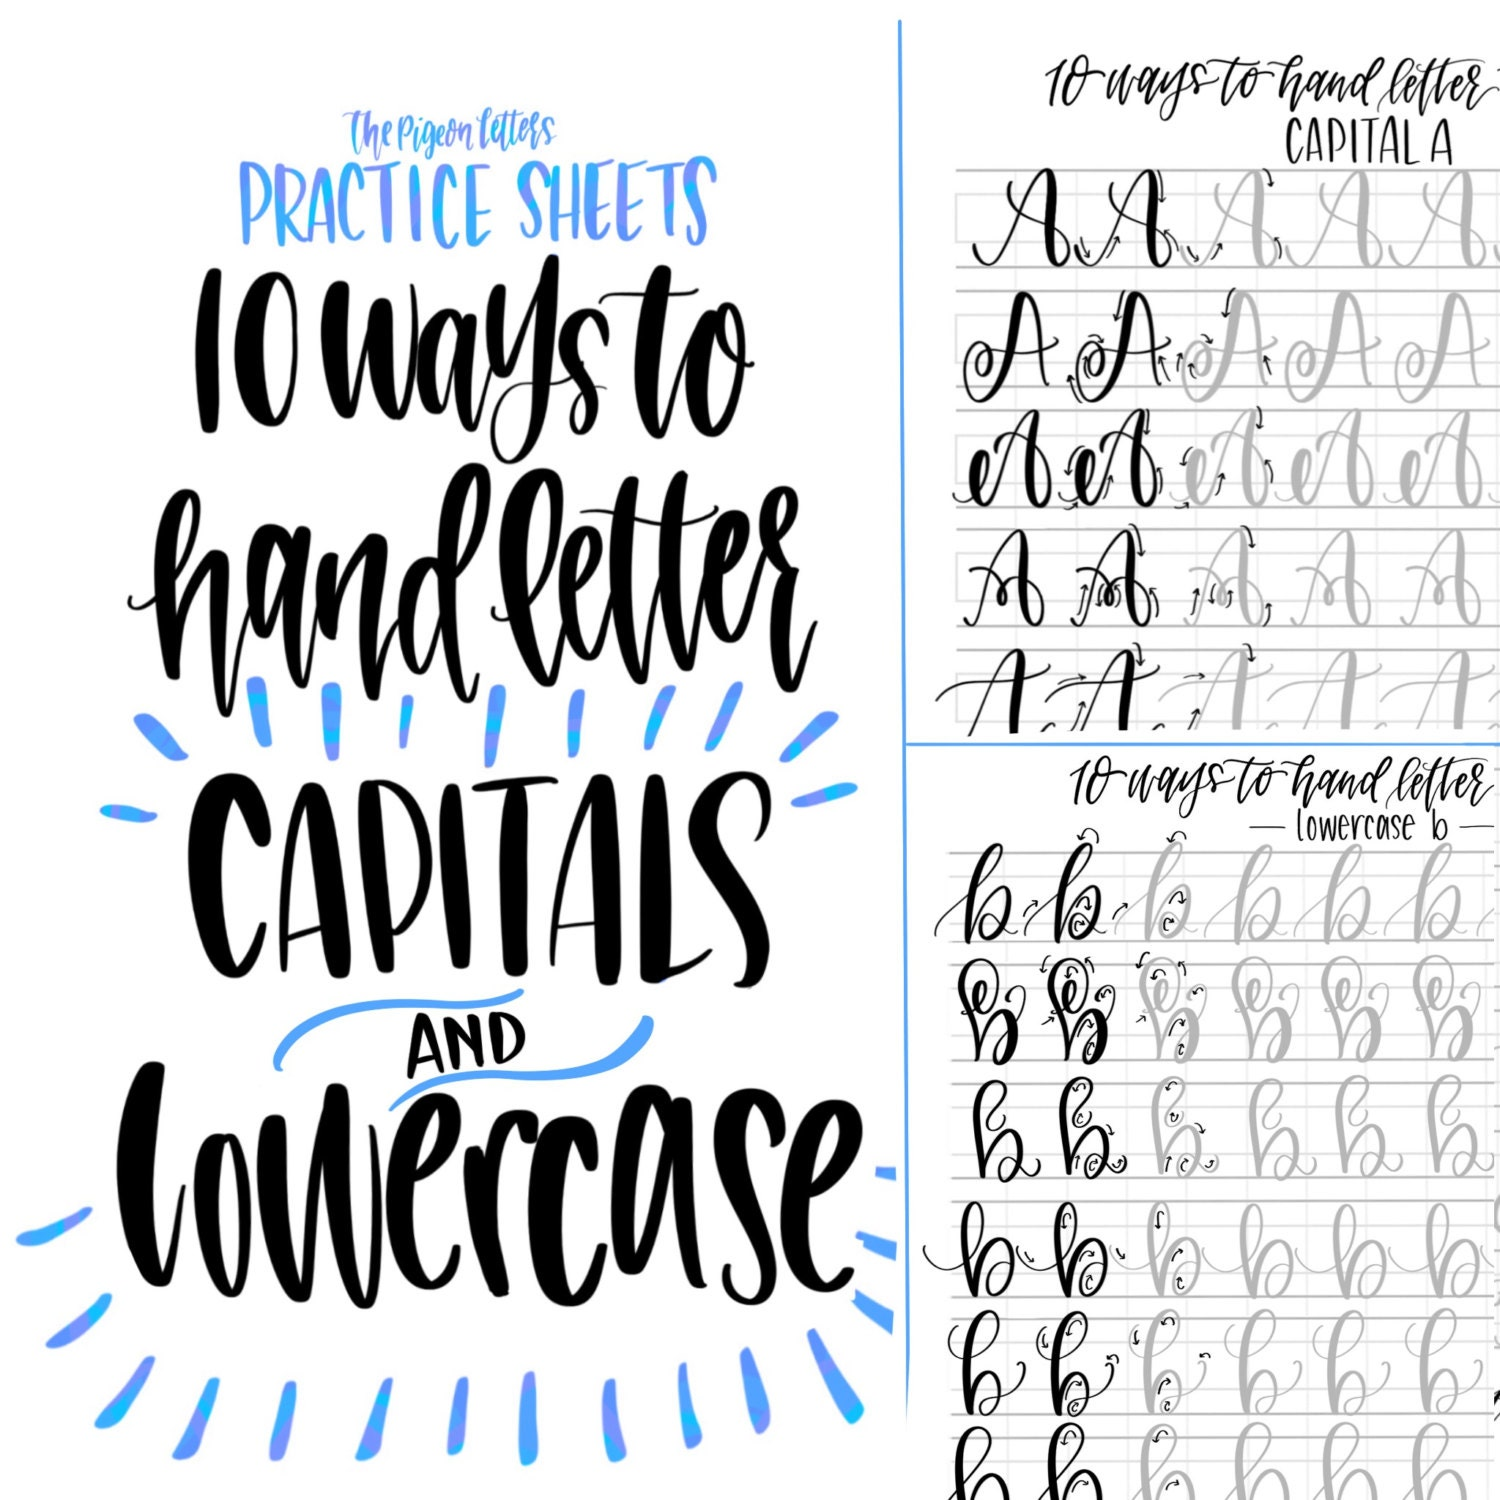 Bundle save hand lettering practice sheets ways to